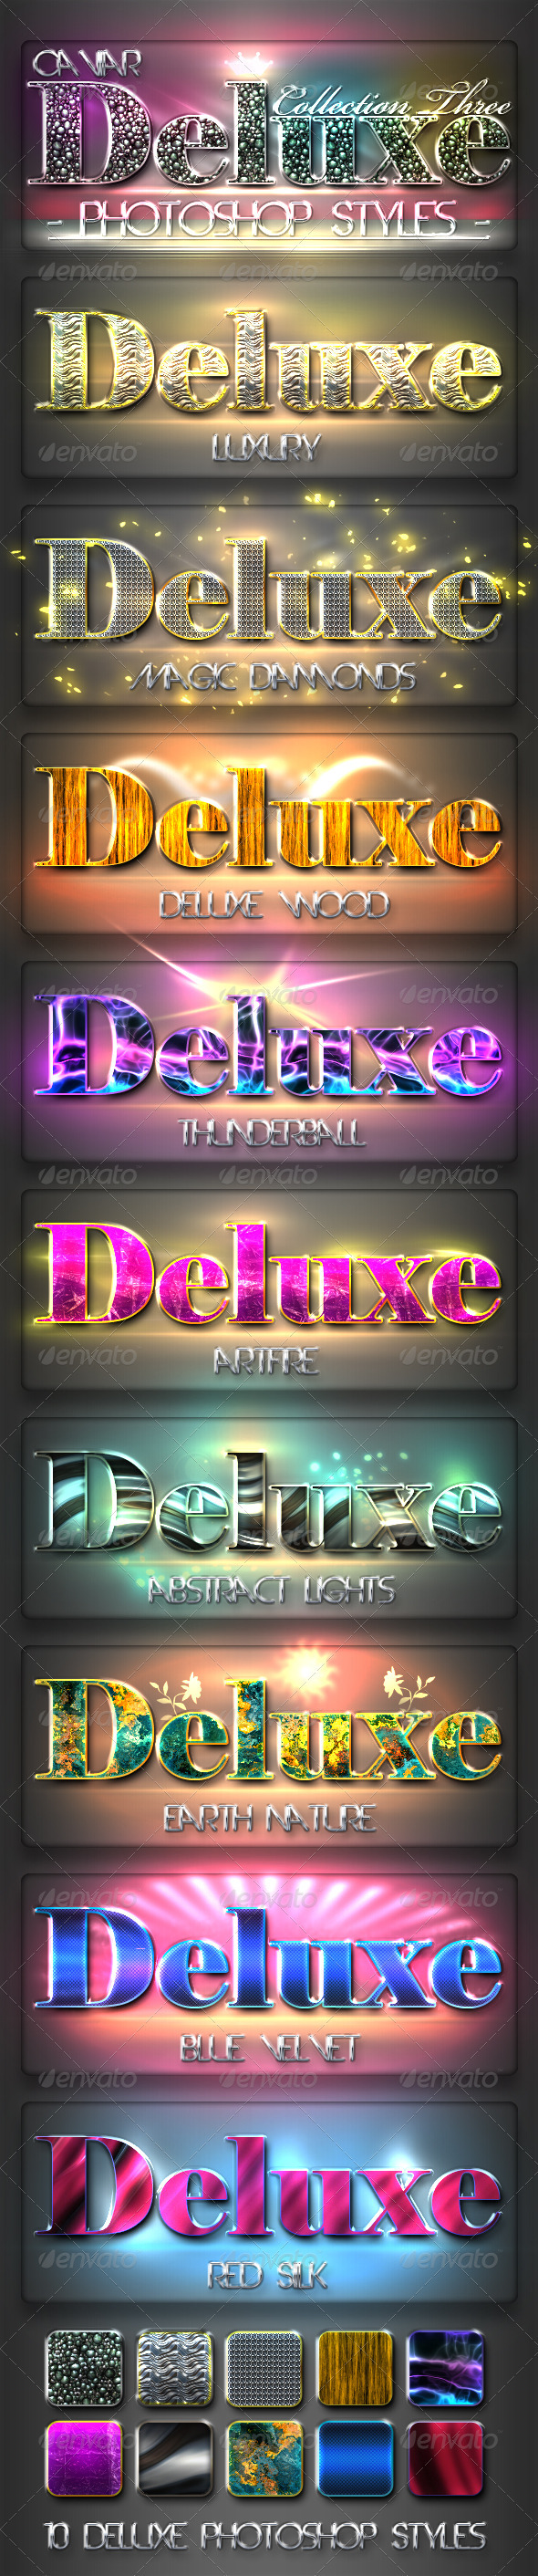 10 DeLuxe Photoshop Layer Styles C3 + Lights - Text Effects Styles